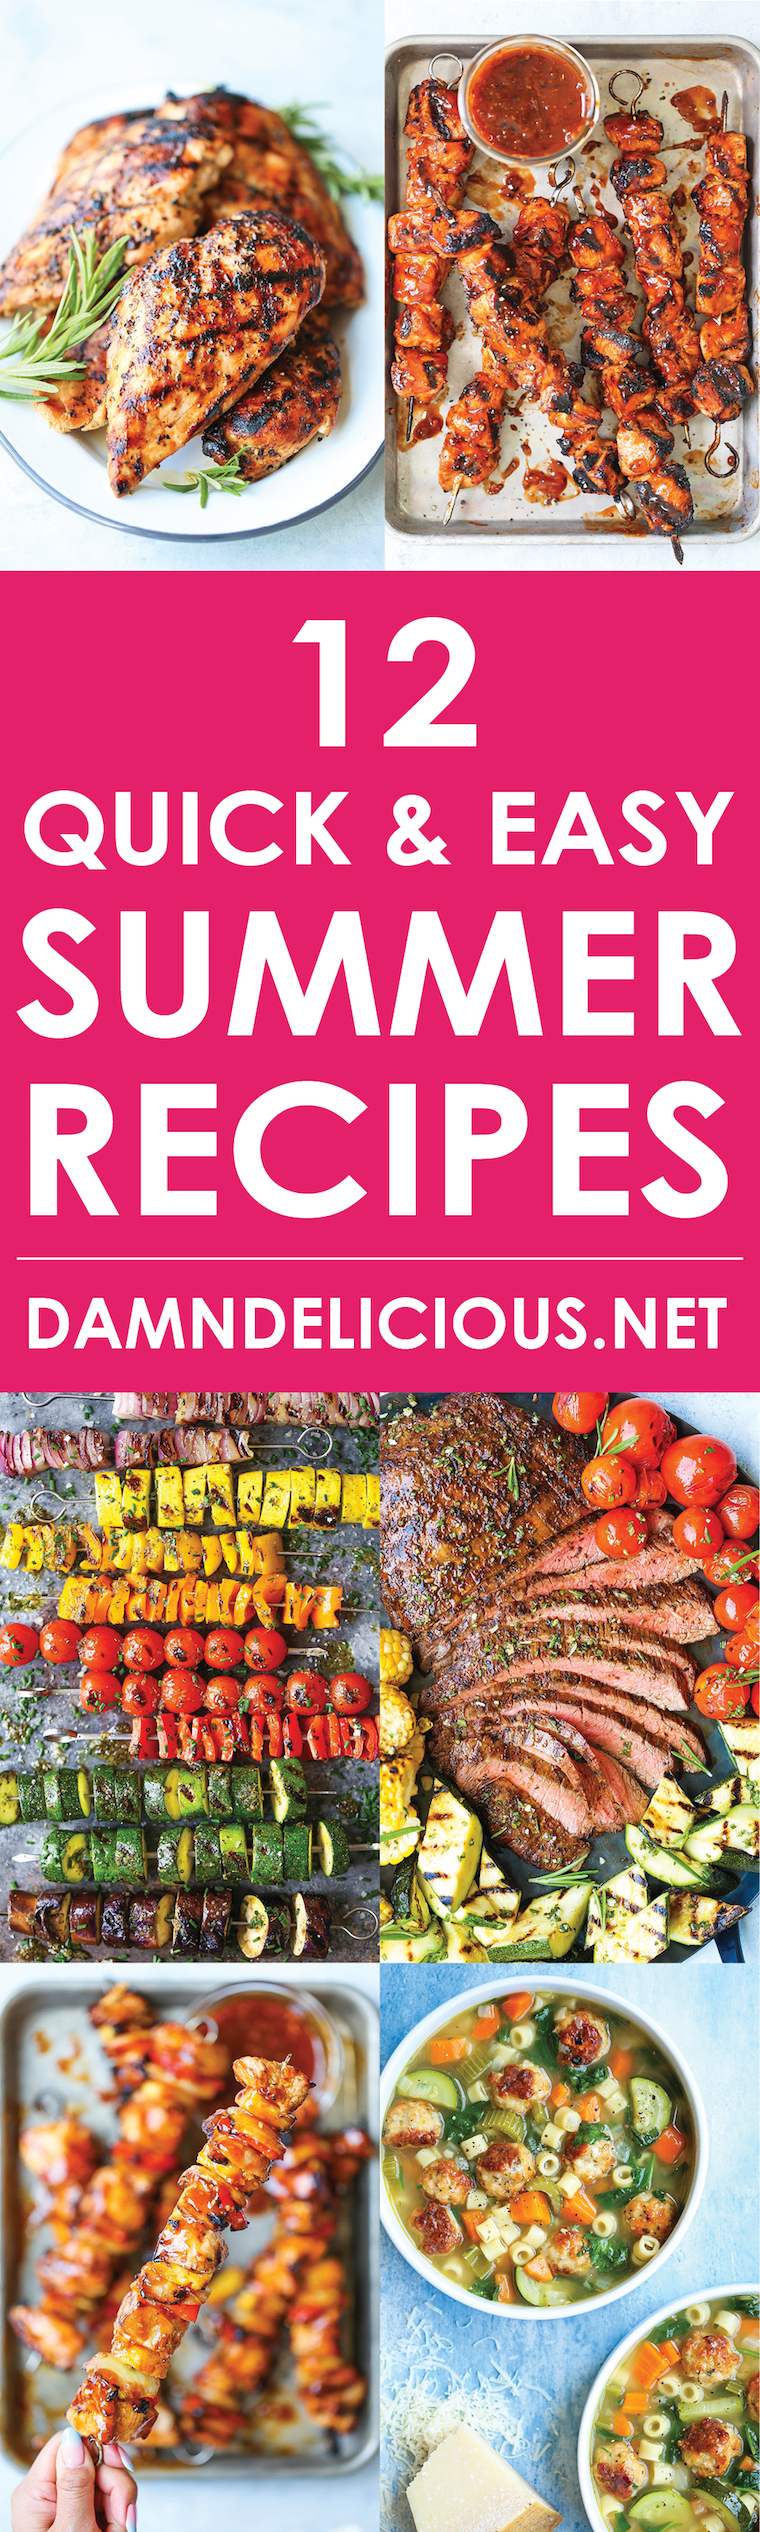 12 Quick and Easy Summer Recipes - From everyone's favorite BBQ pineapple chicken kabobs to a hearty summer minestrone, these are the best summer recipes!